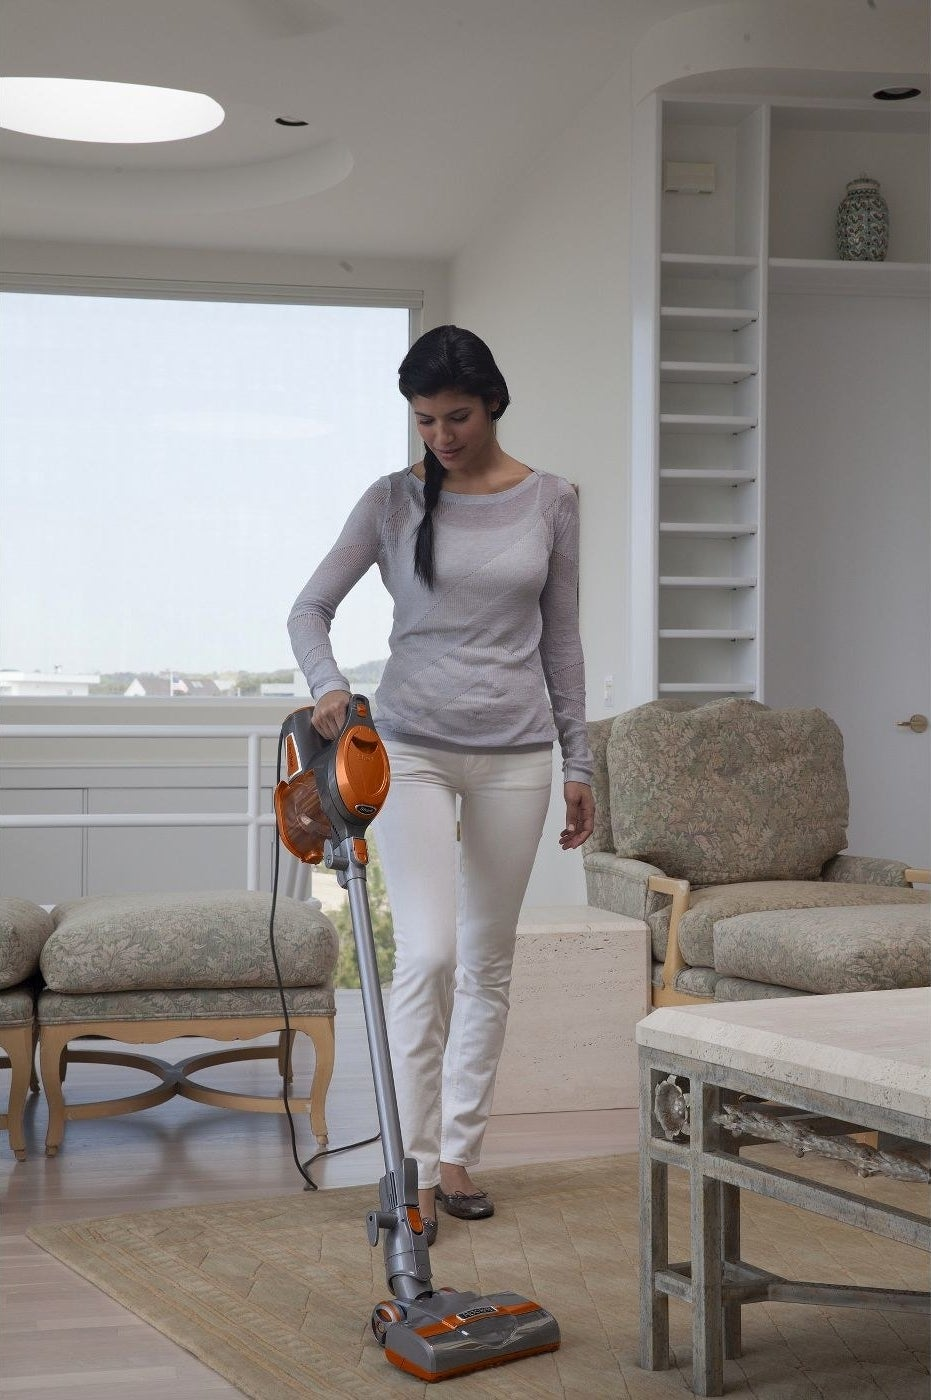 Model vacuuming in a home